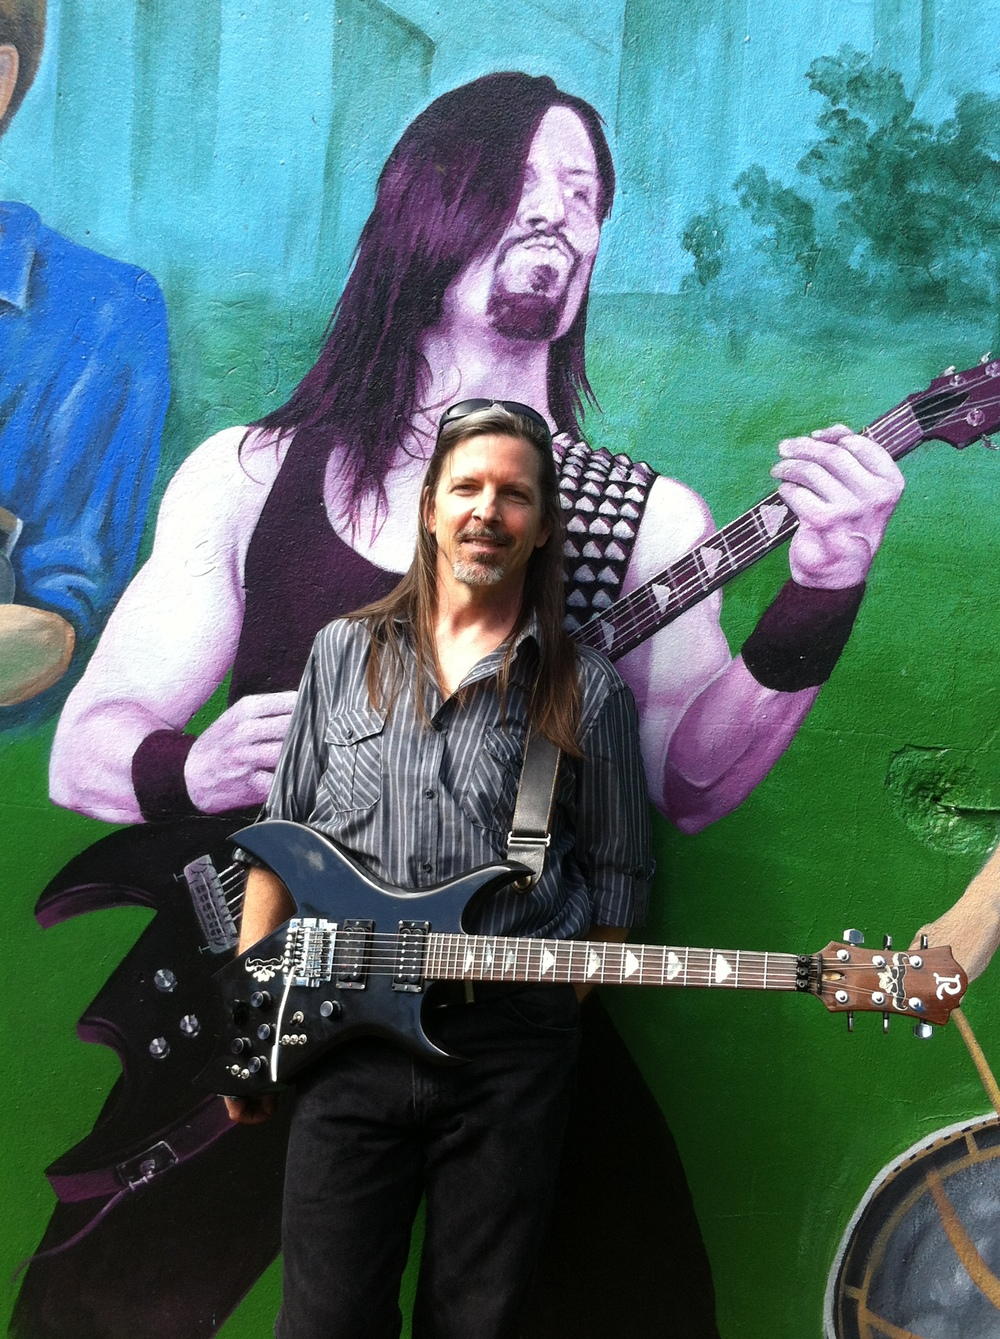 John at a the opening of his commemorative mural - Baltimore MD 2014